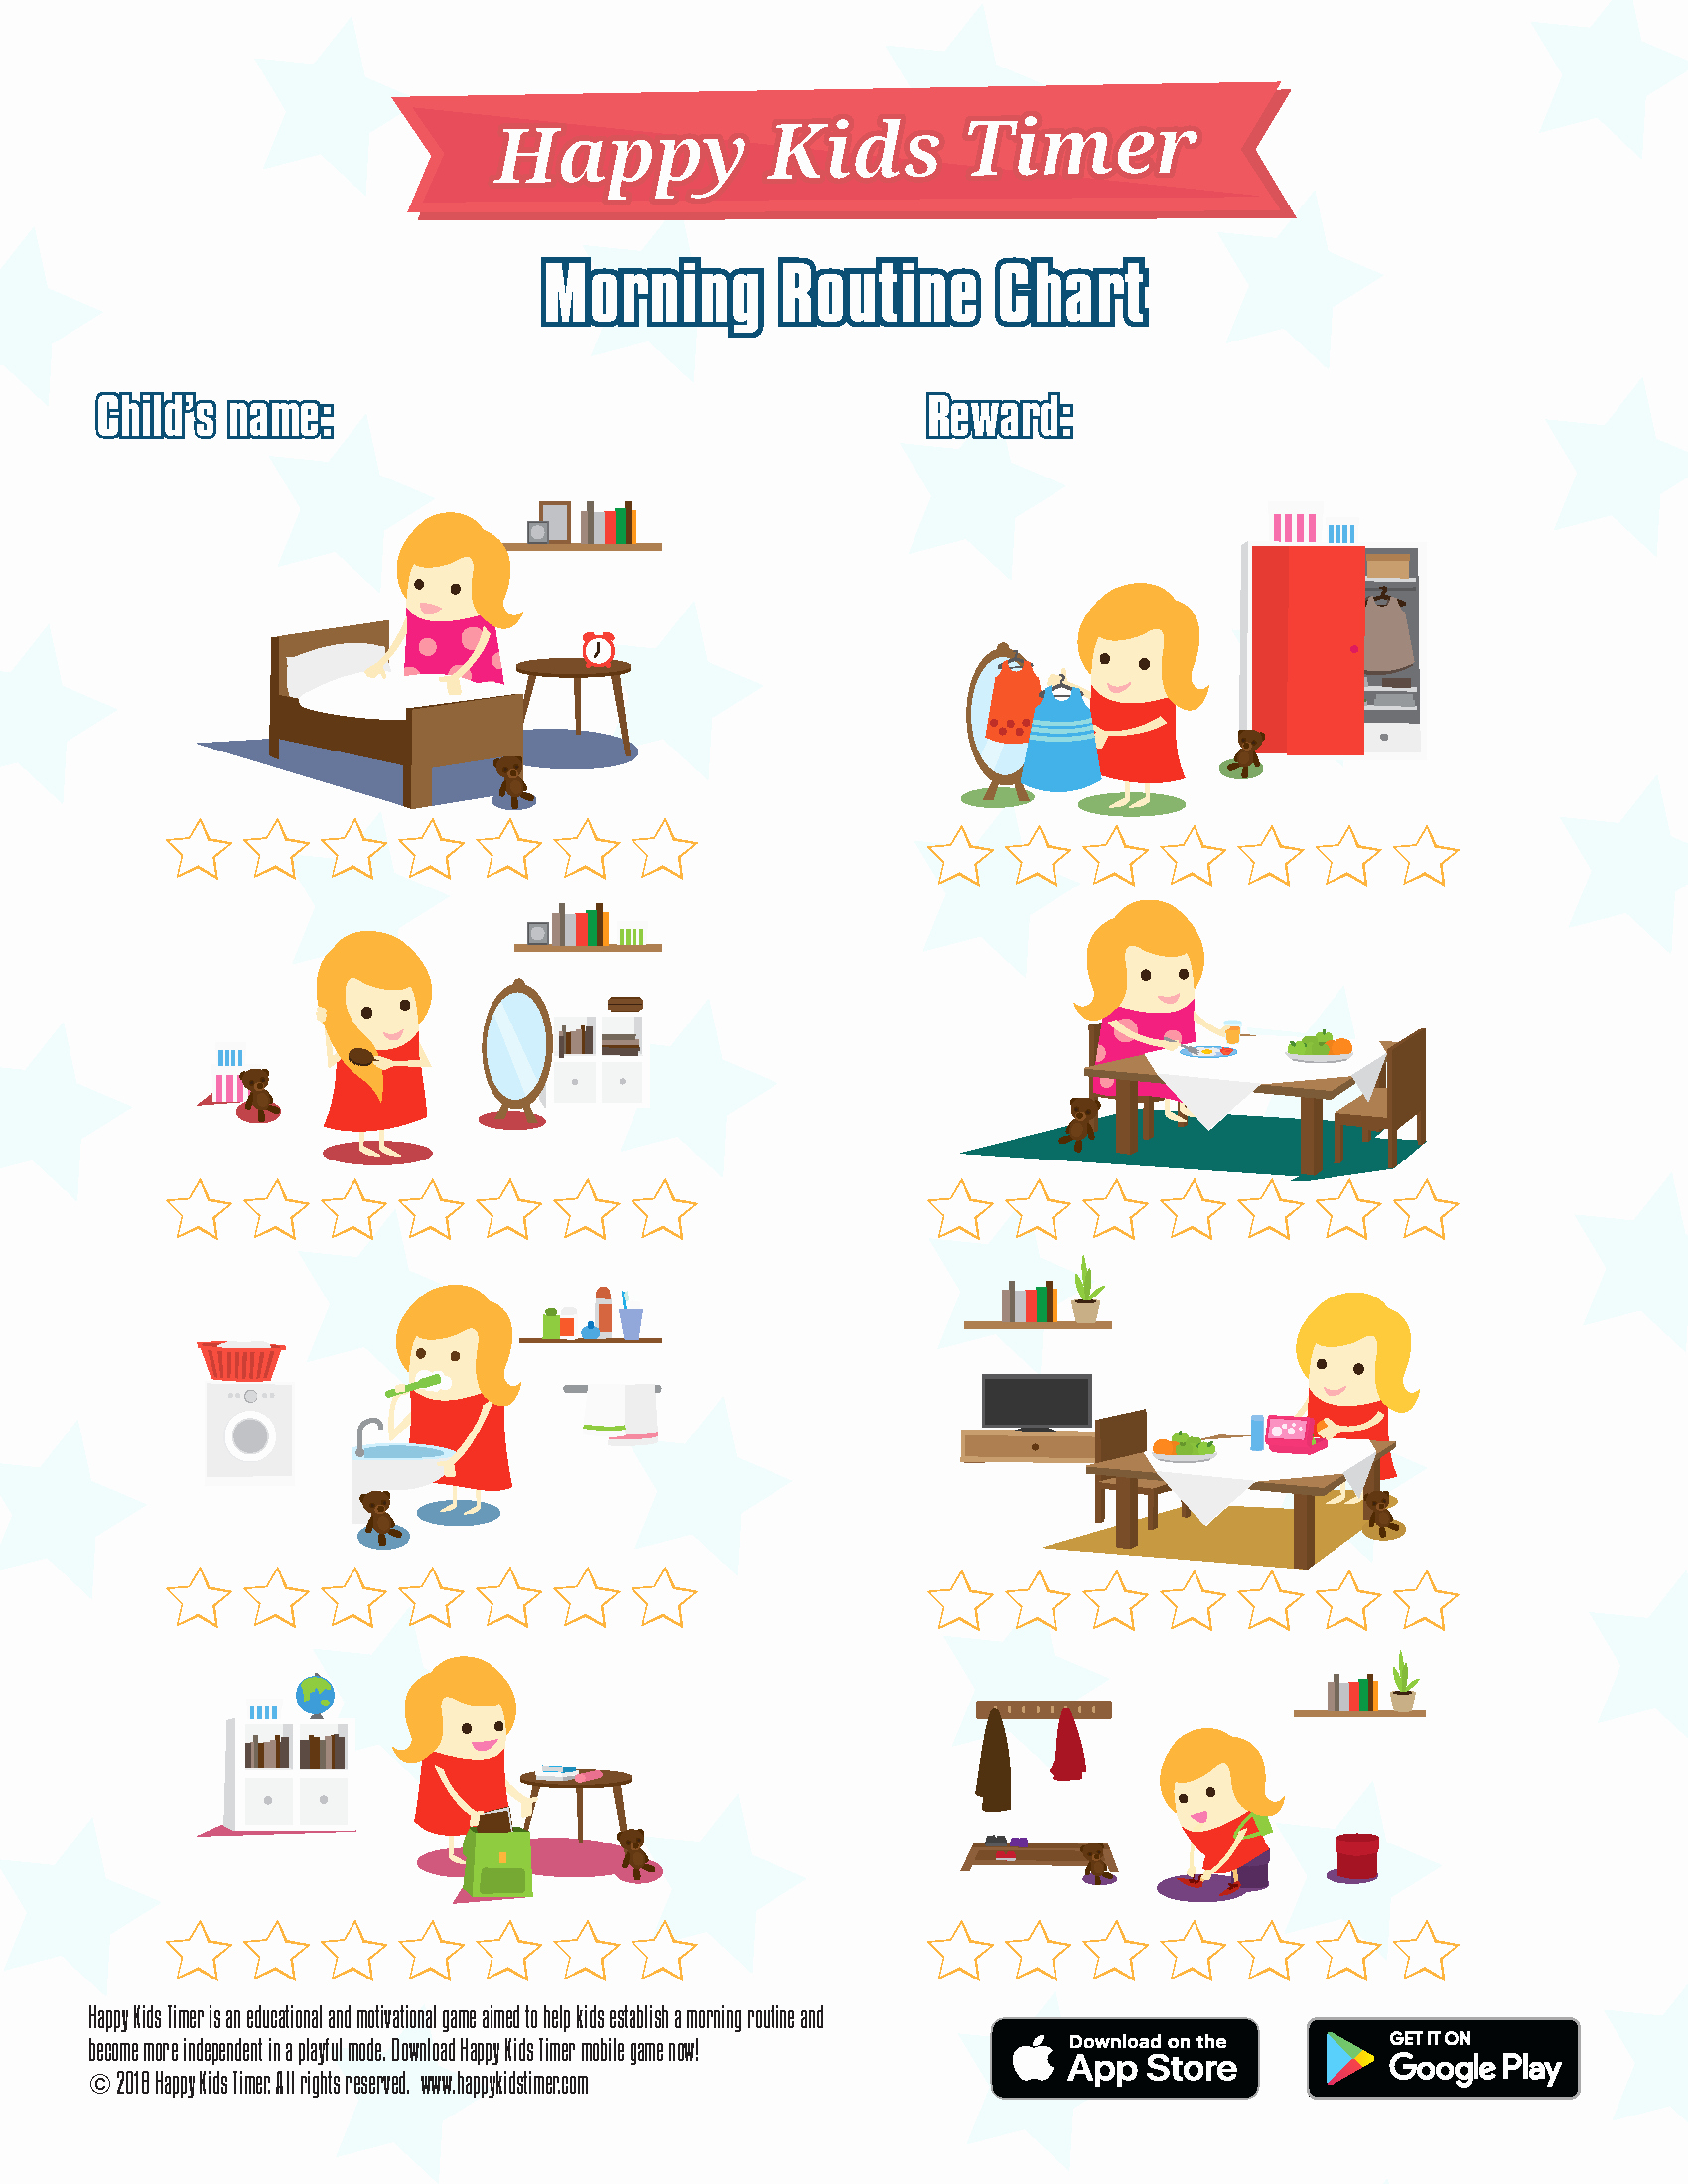 Child Behaviour Checklist Free Download Unique Download Free Printable Morning Routine Chart